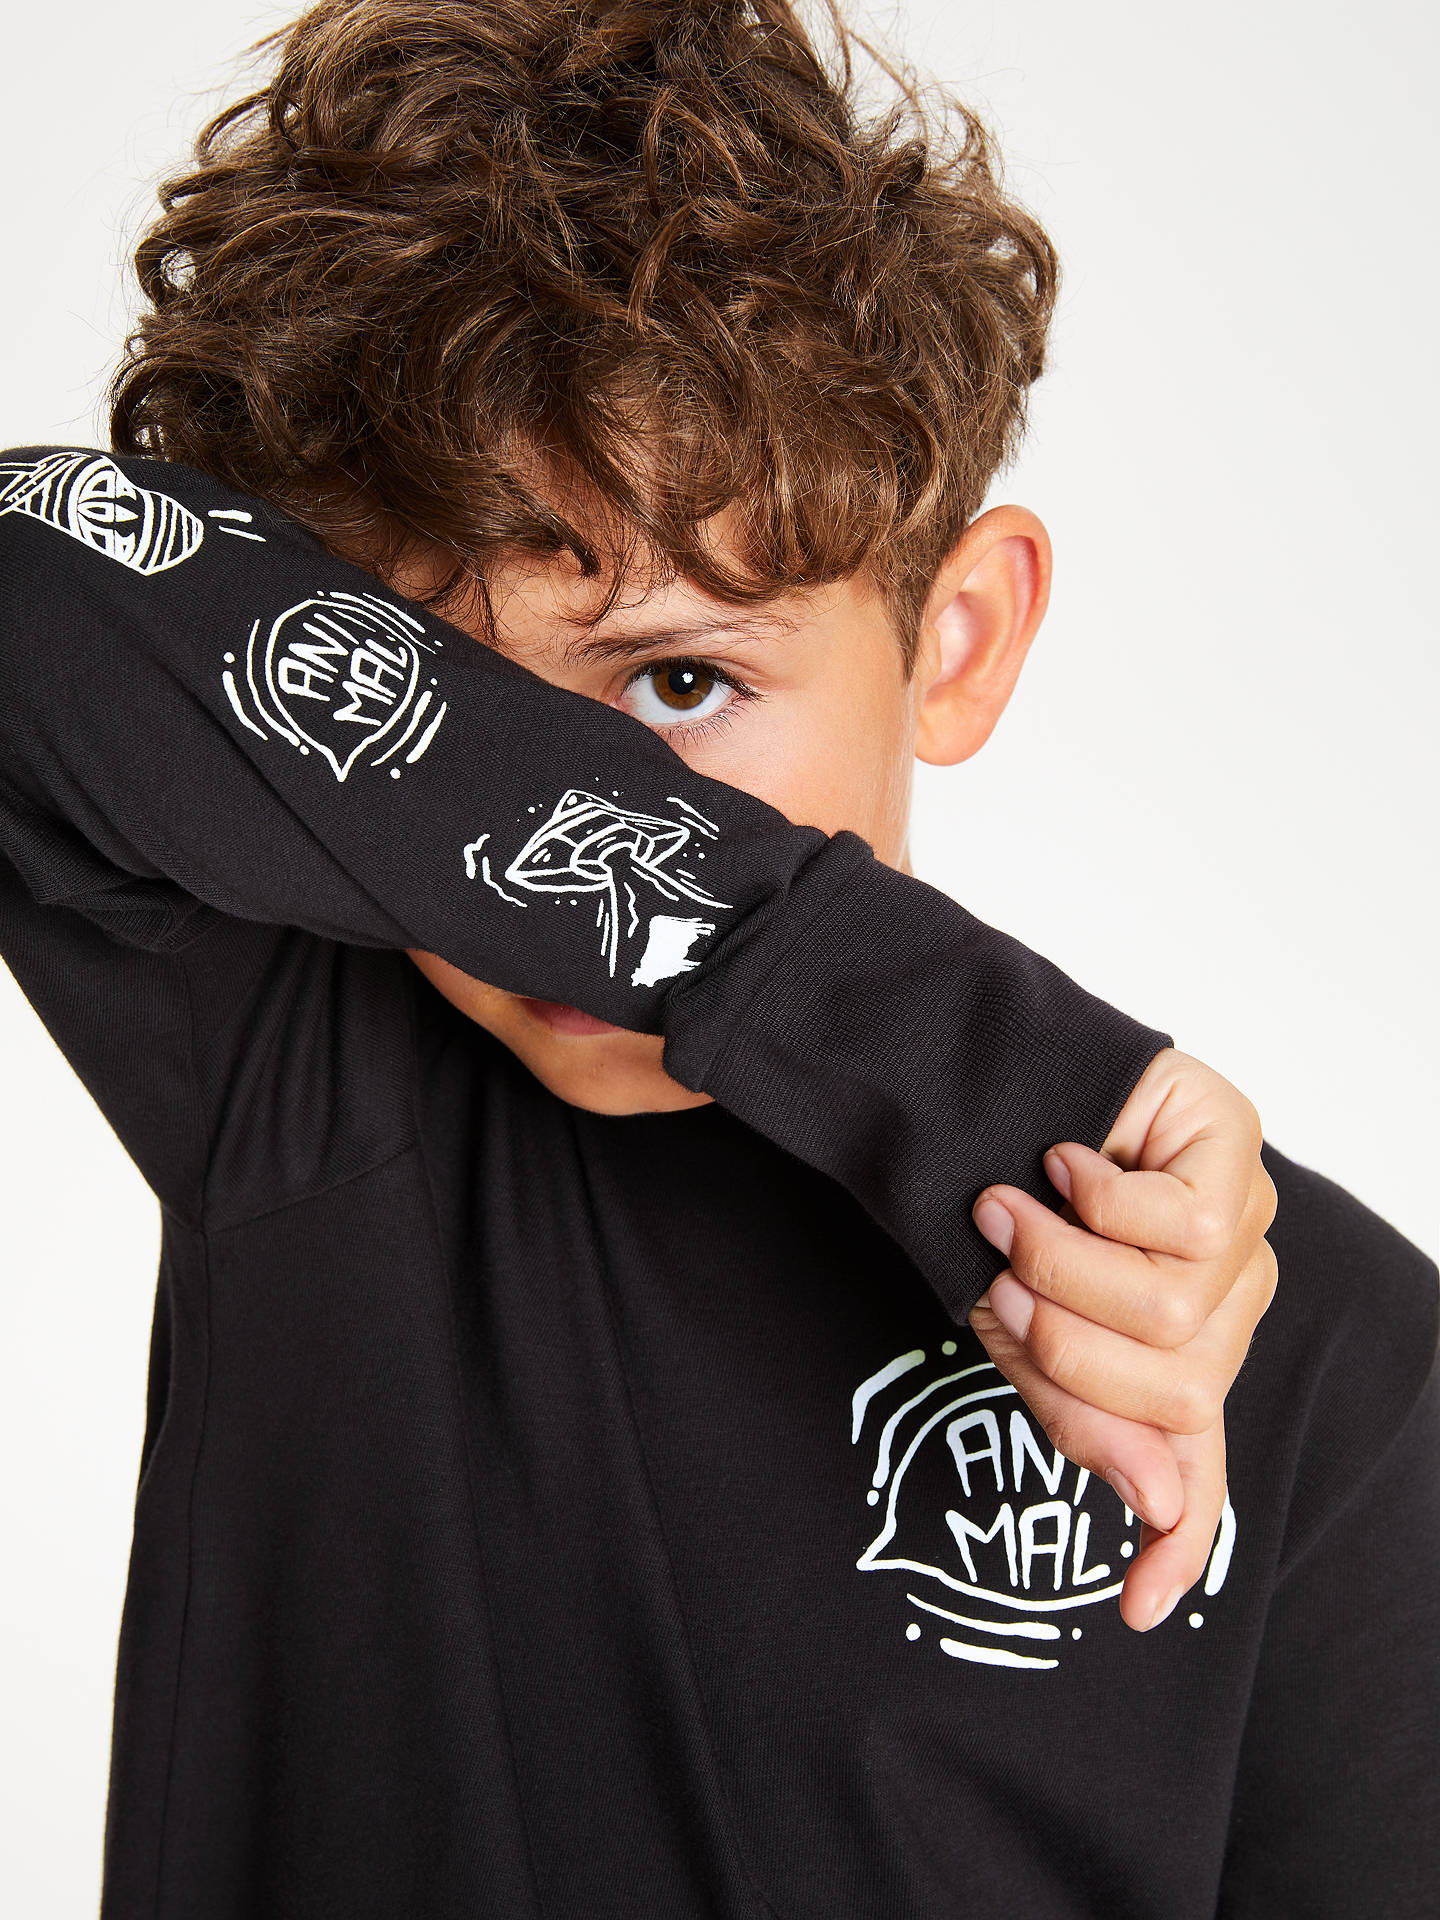 BuyAnimal Boys' Comet Print T-Shirt, Black, 7-8 years Online at johnlewis.com